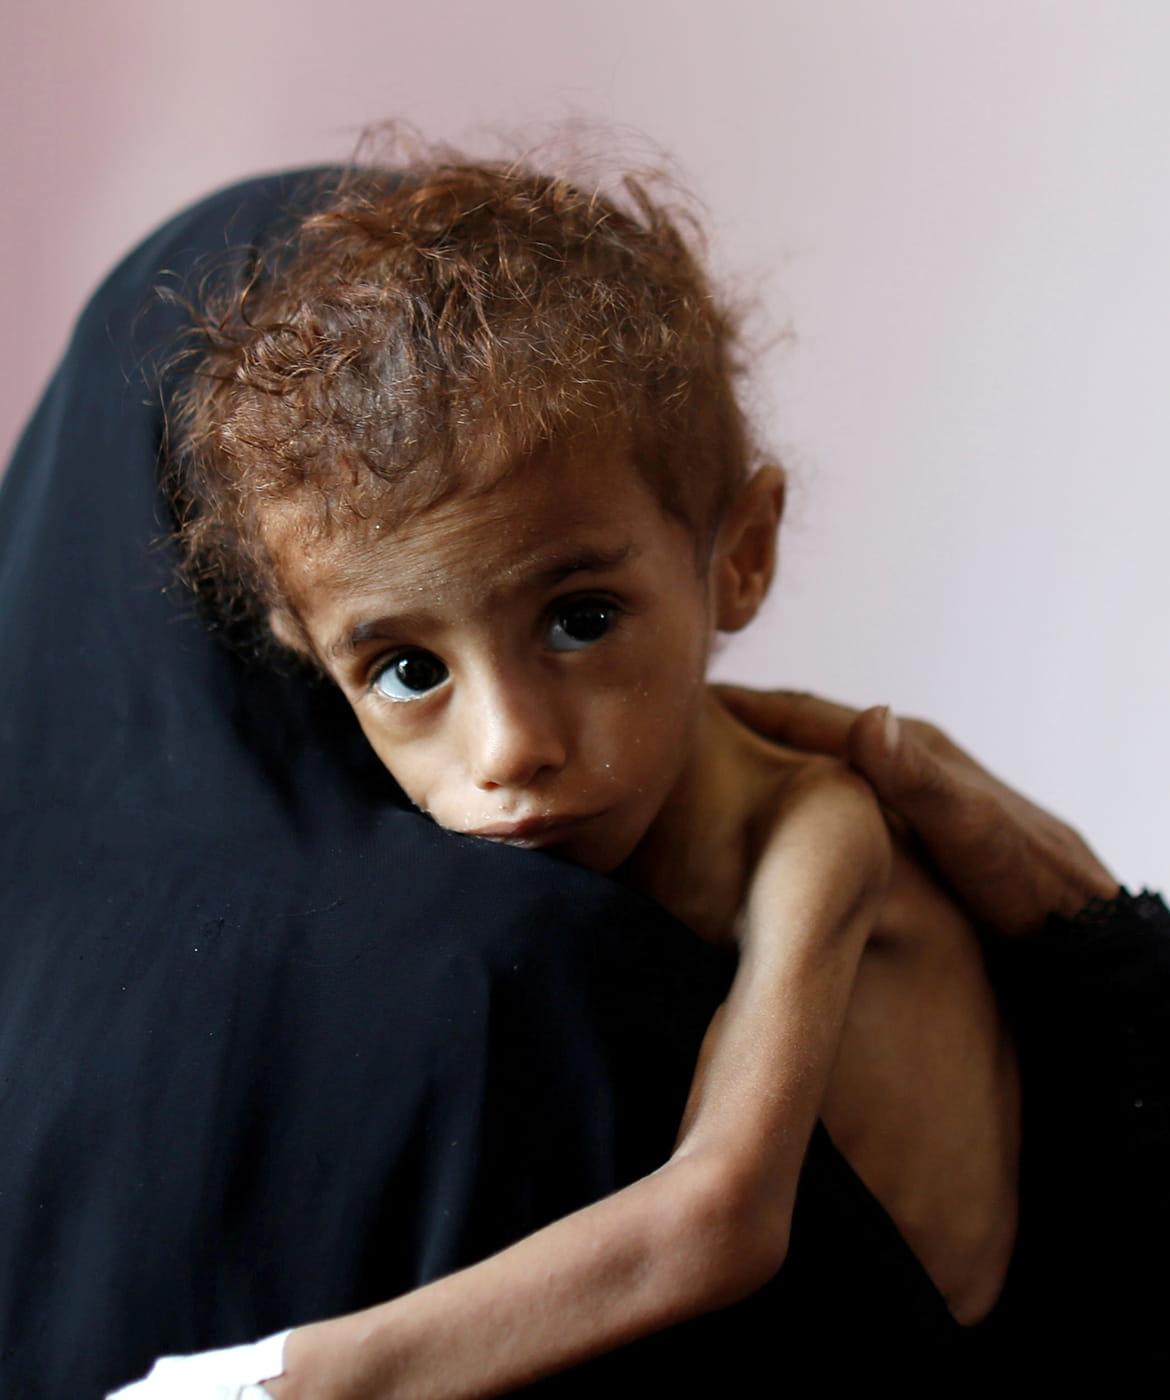 Young child in Yemen being held by mother